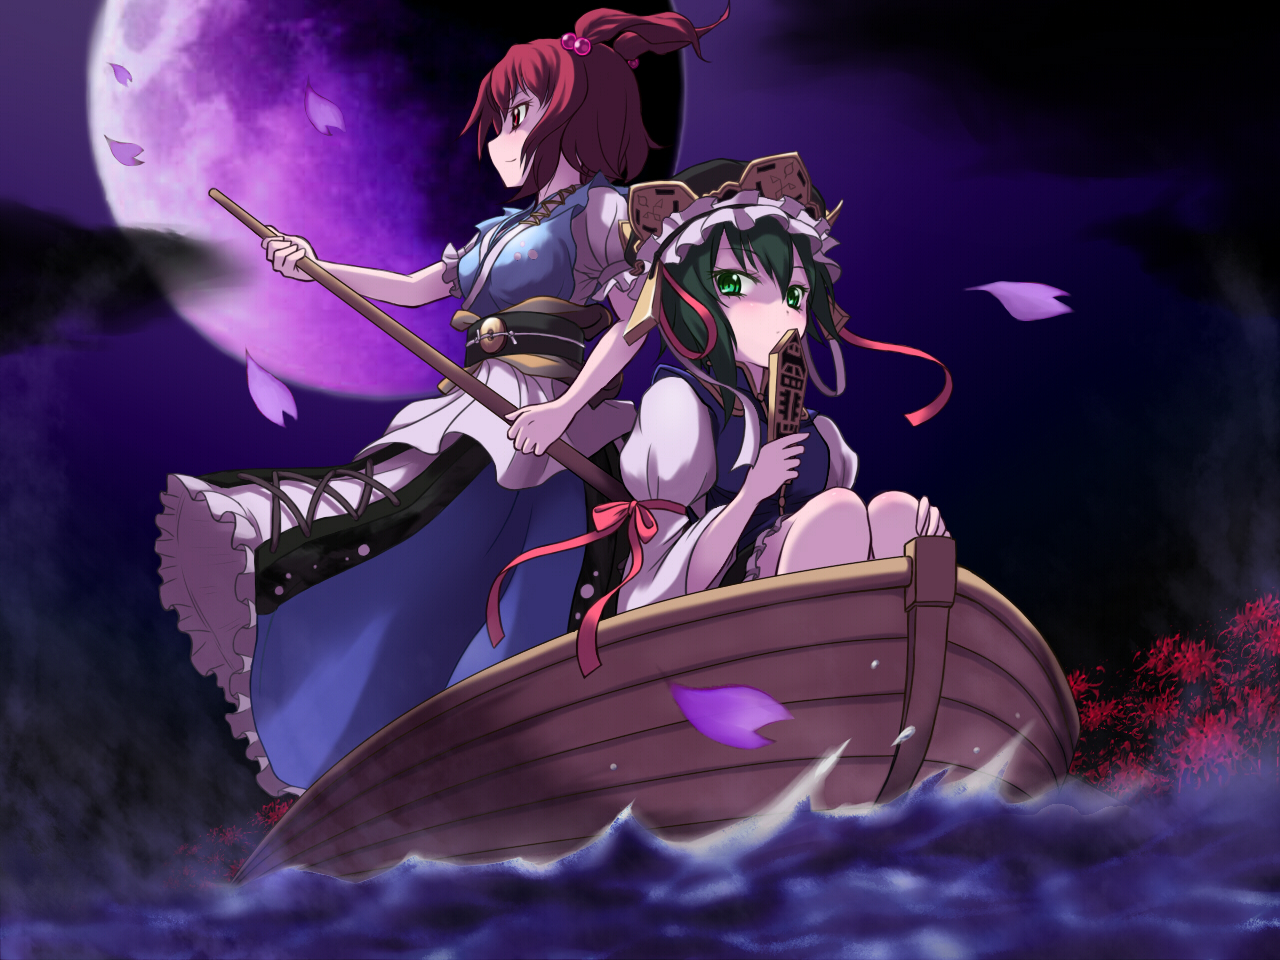 2girls boat flowers green_eyes green_hair hat jungetsu_hoko moon night onozuka_komachi red_eyes red_hair shikieiki_yamaxanadu short_hair touhou